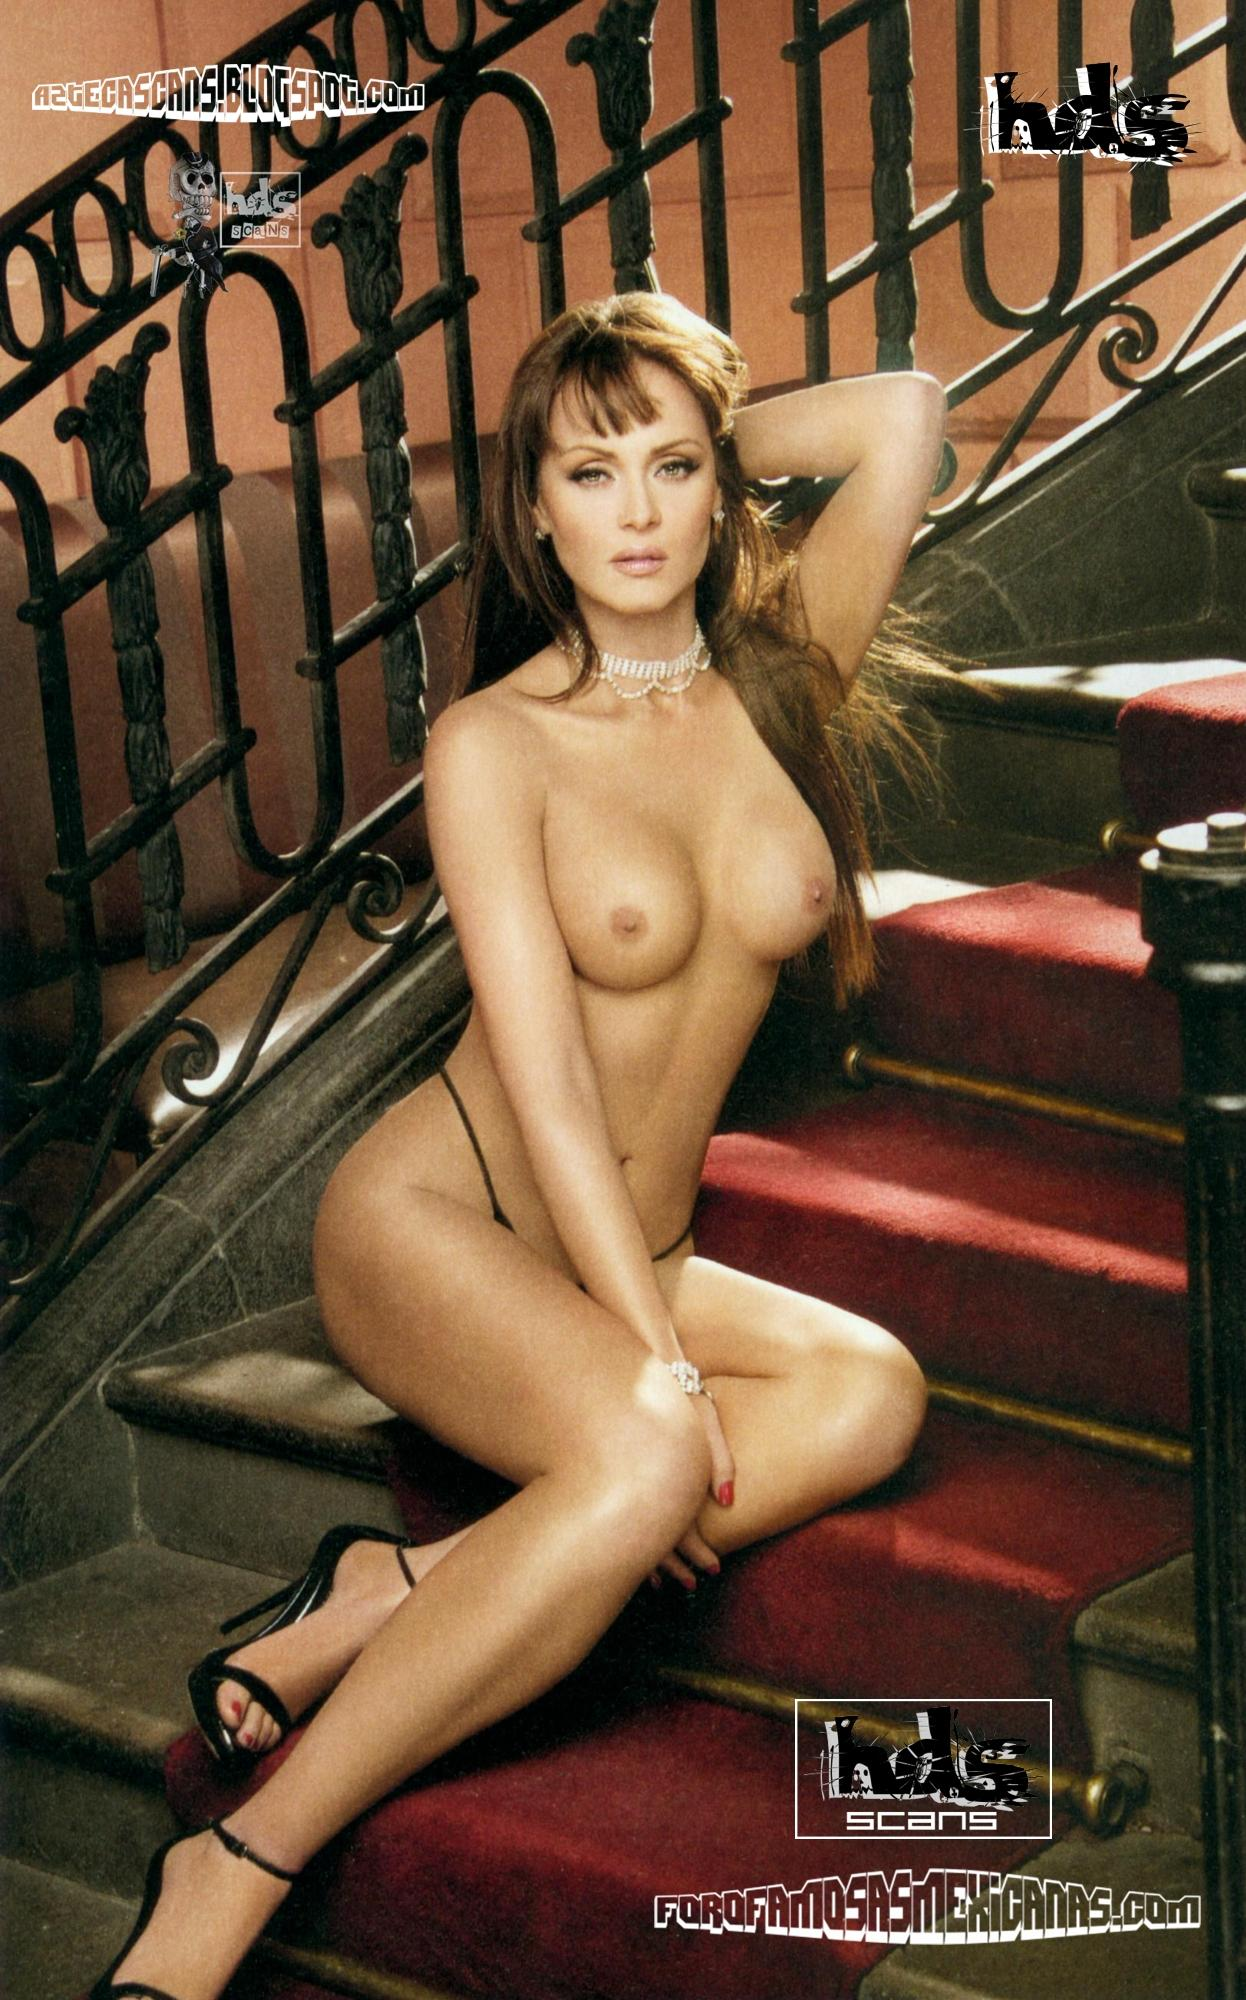 Has Gabriela Spanic Ever Been Nude